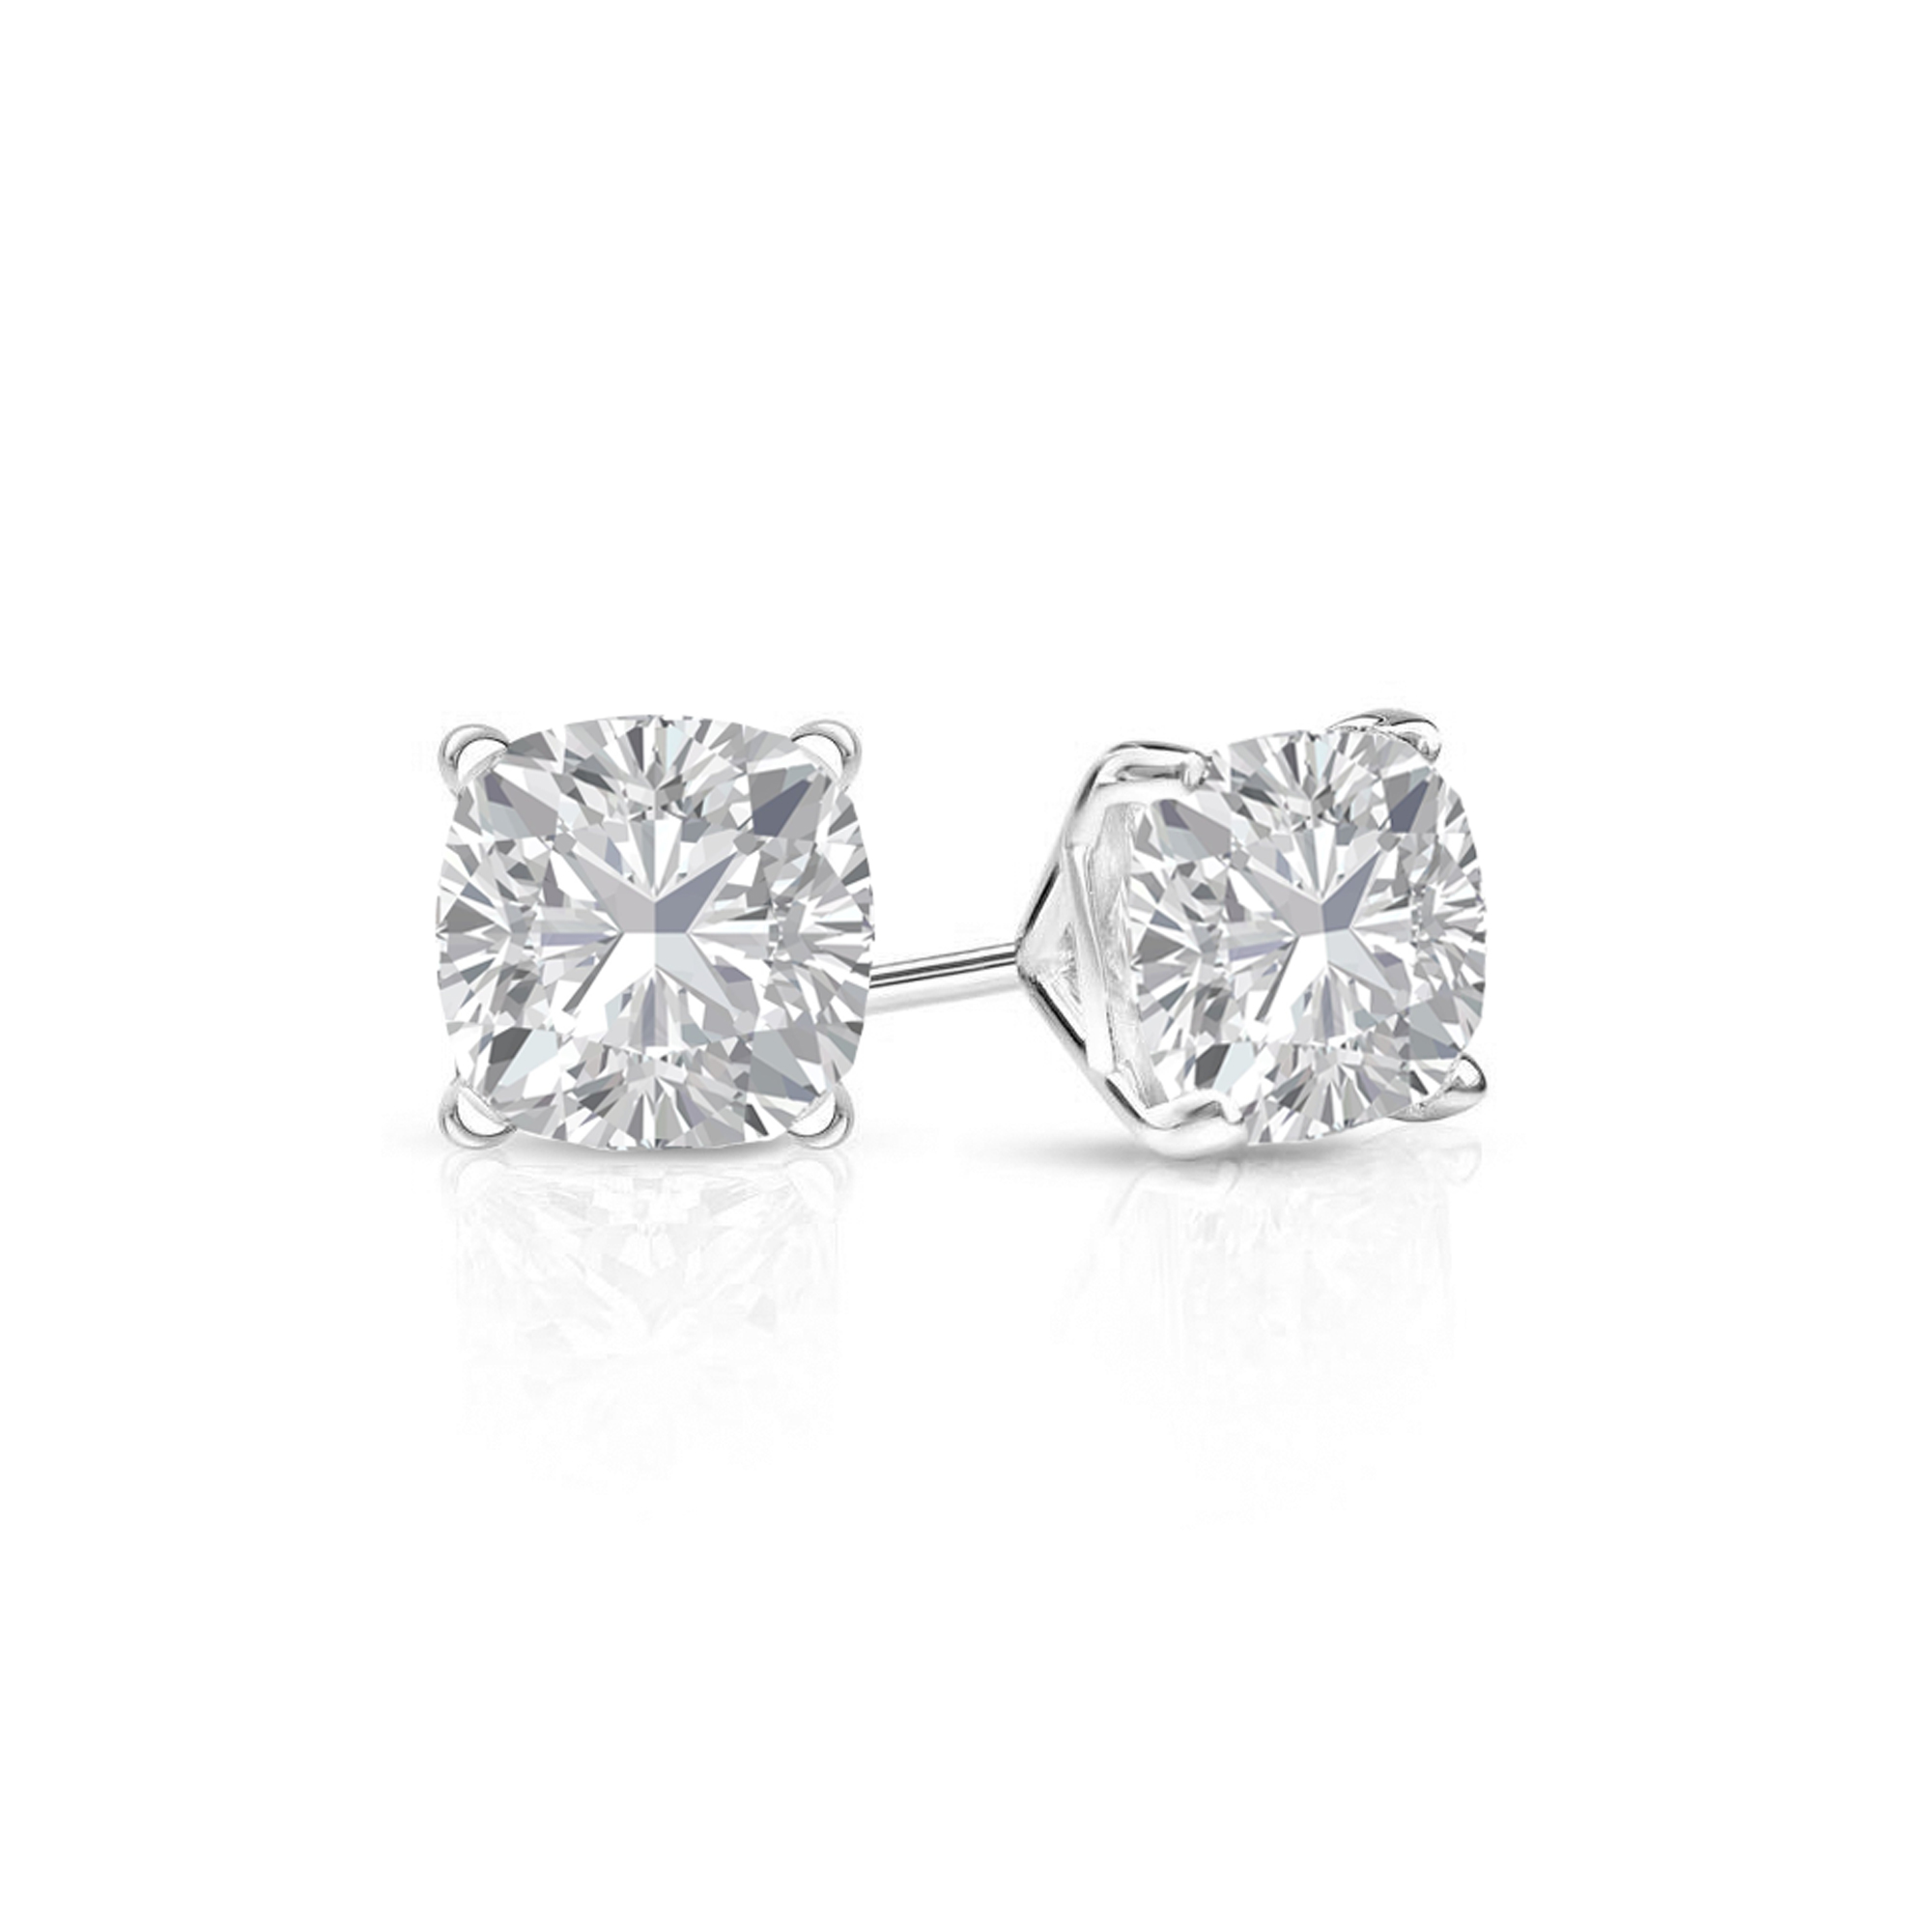 earrings white moissanite ct lab round stud forever cut gold created w brilliant pin t